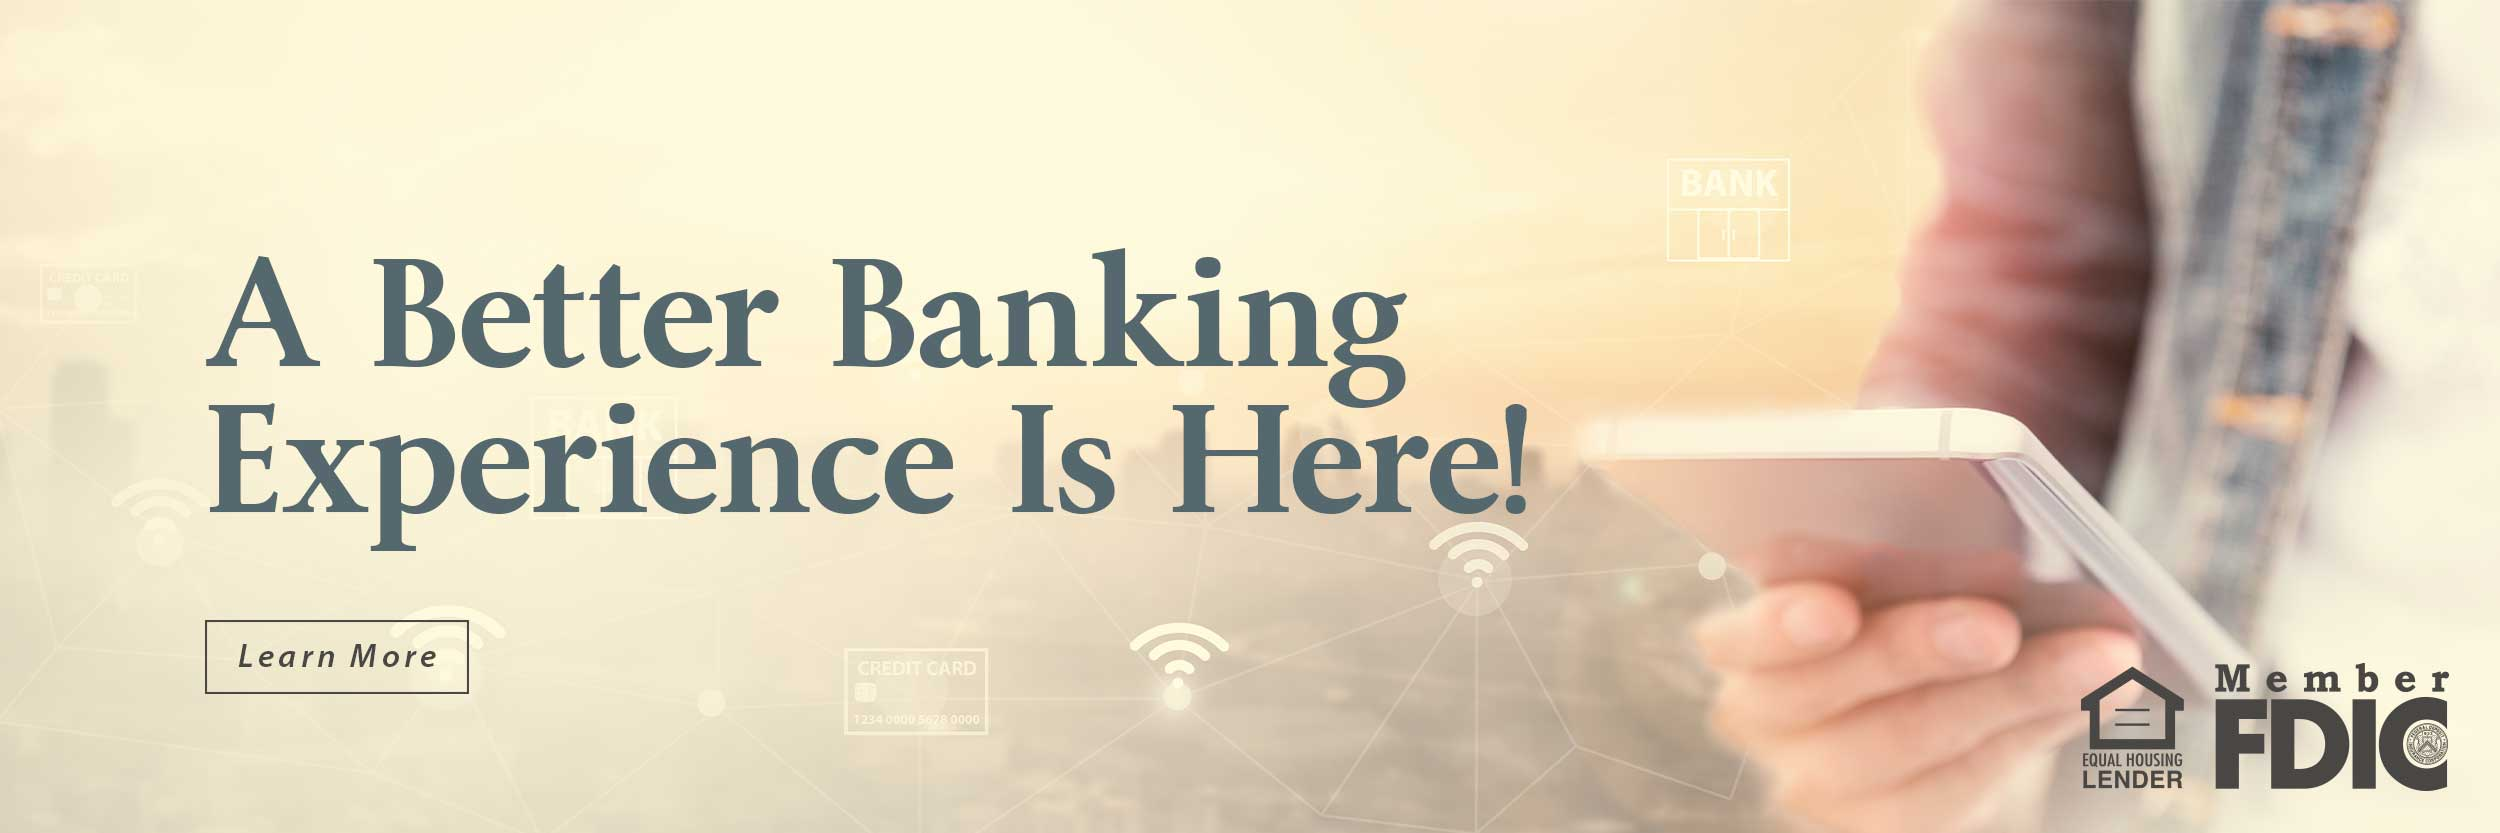 Better Banking Experience